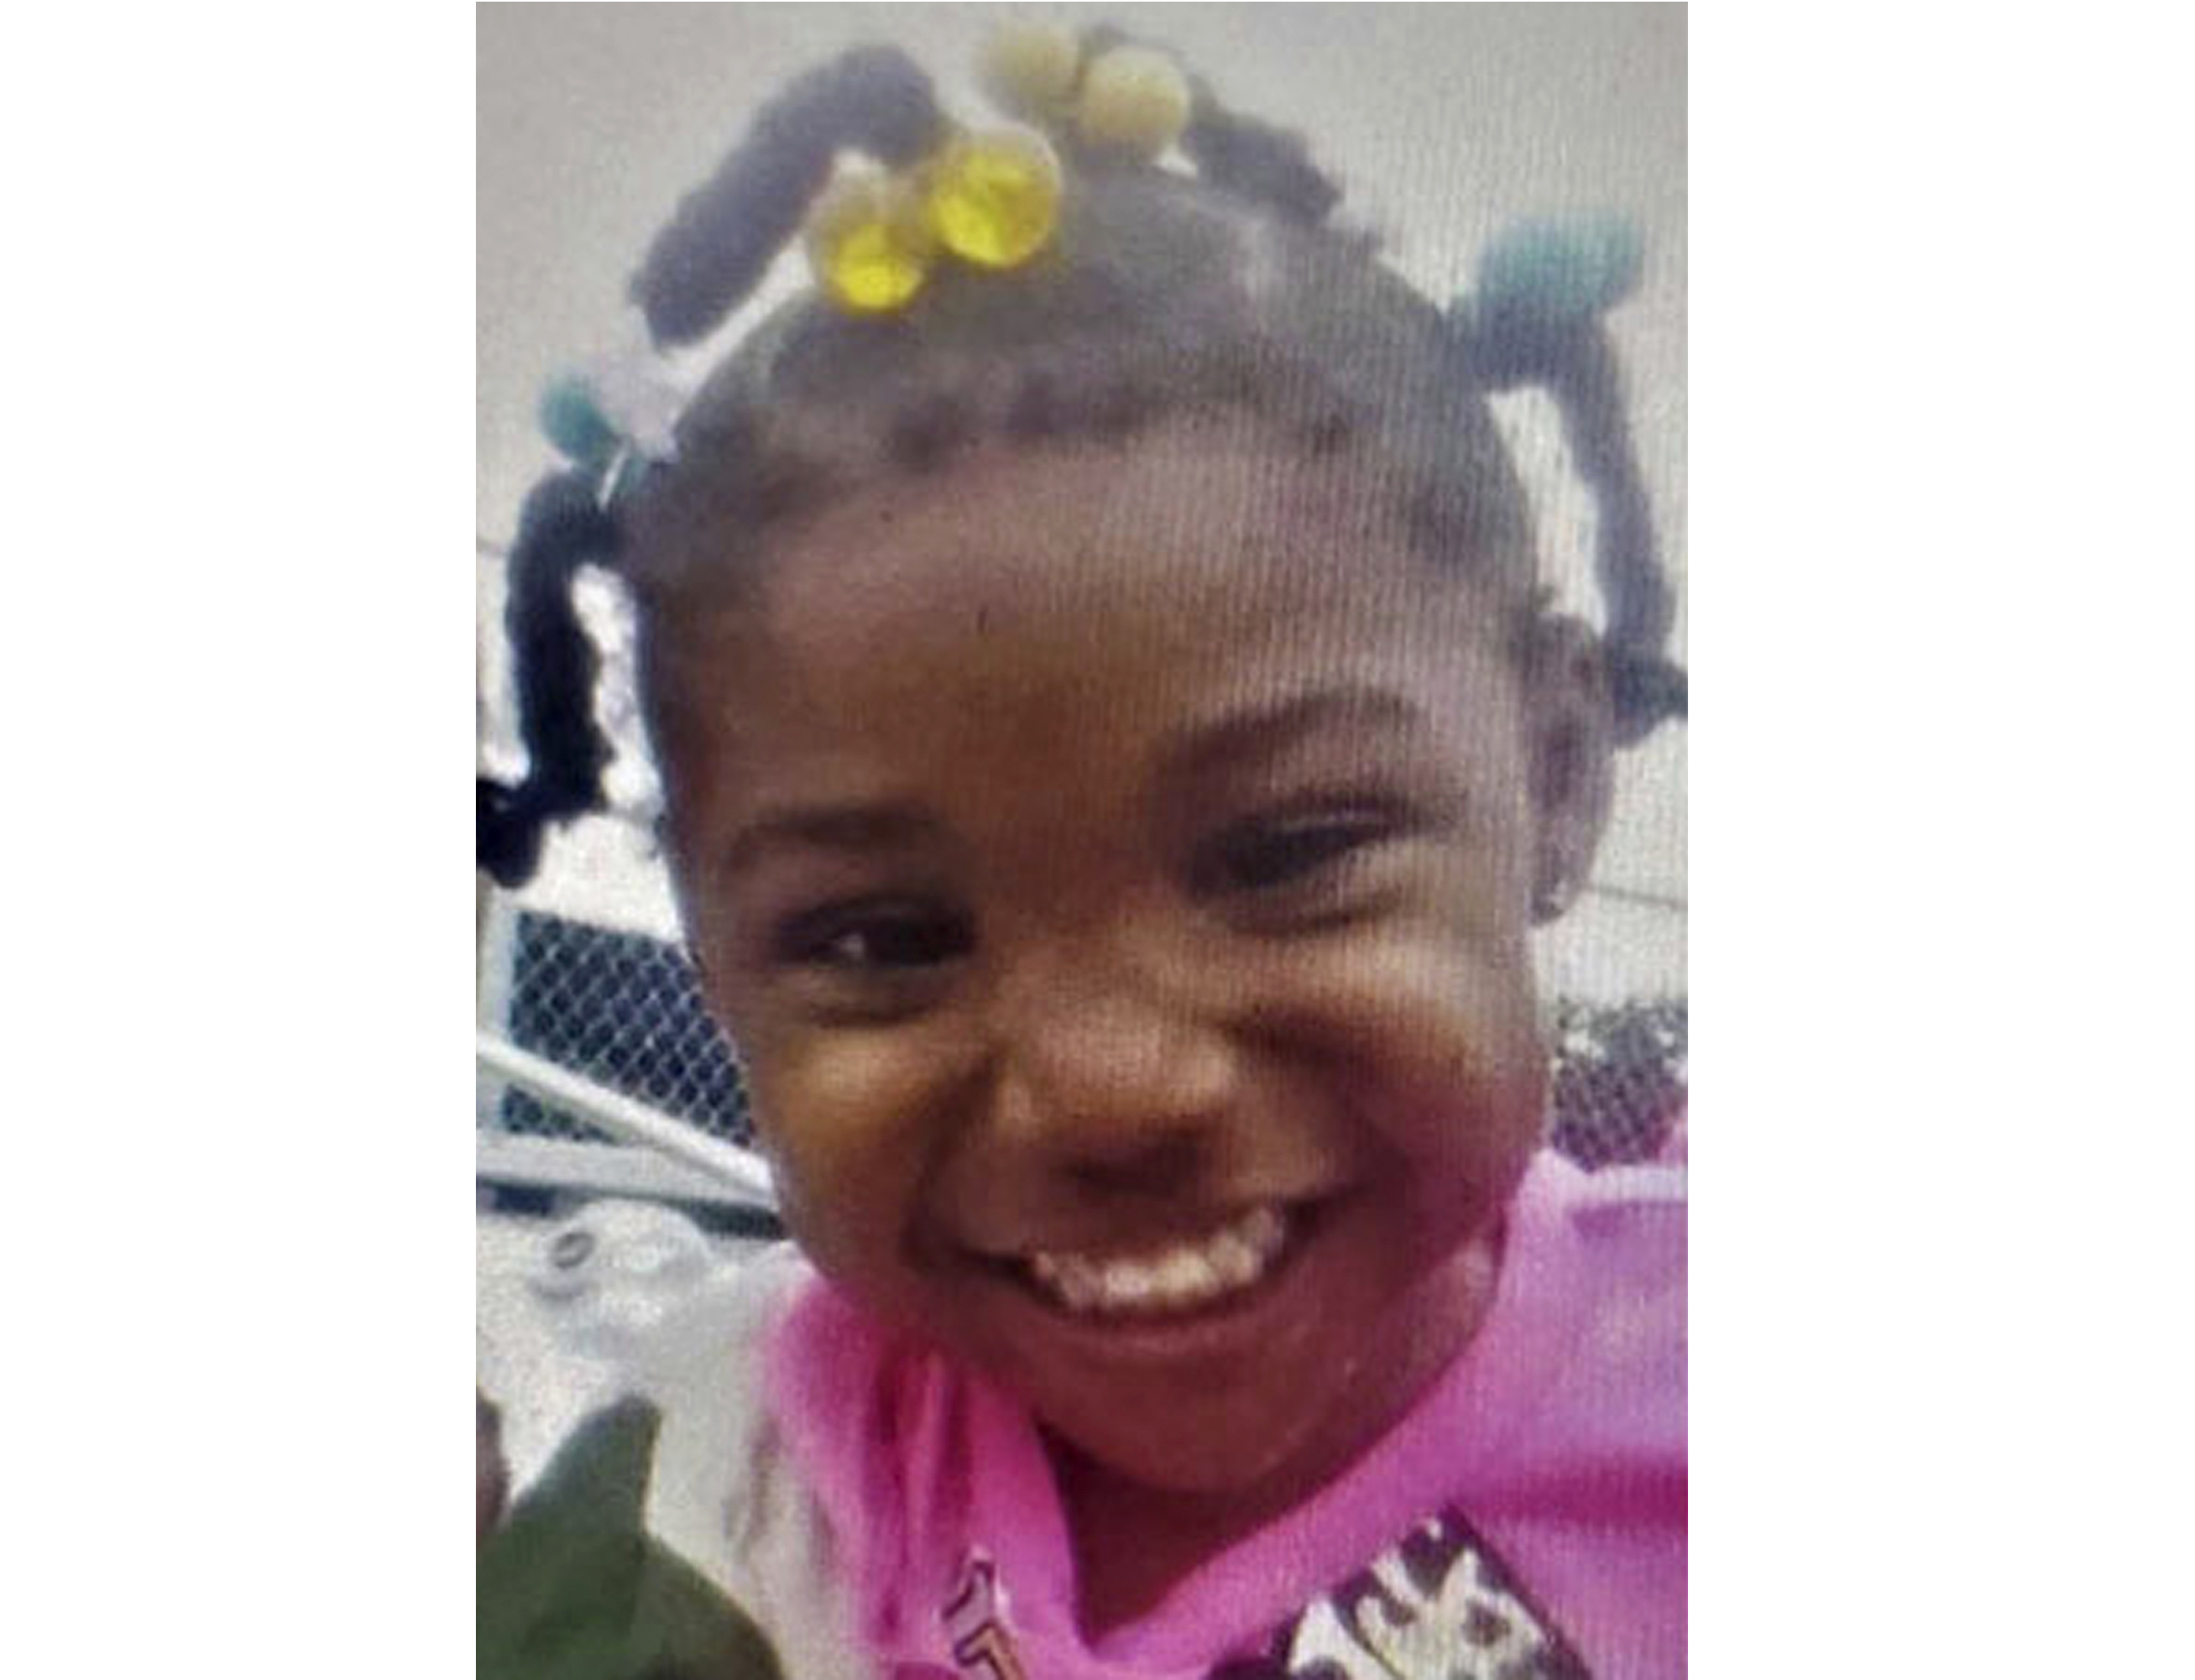 An undated file photo released by the FBI of 3-year-old Kamille McKinney.